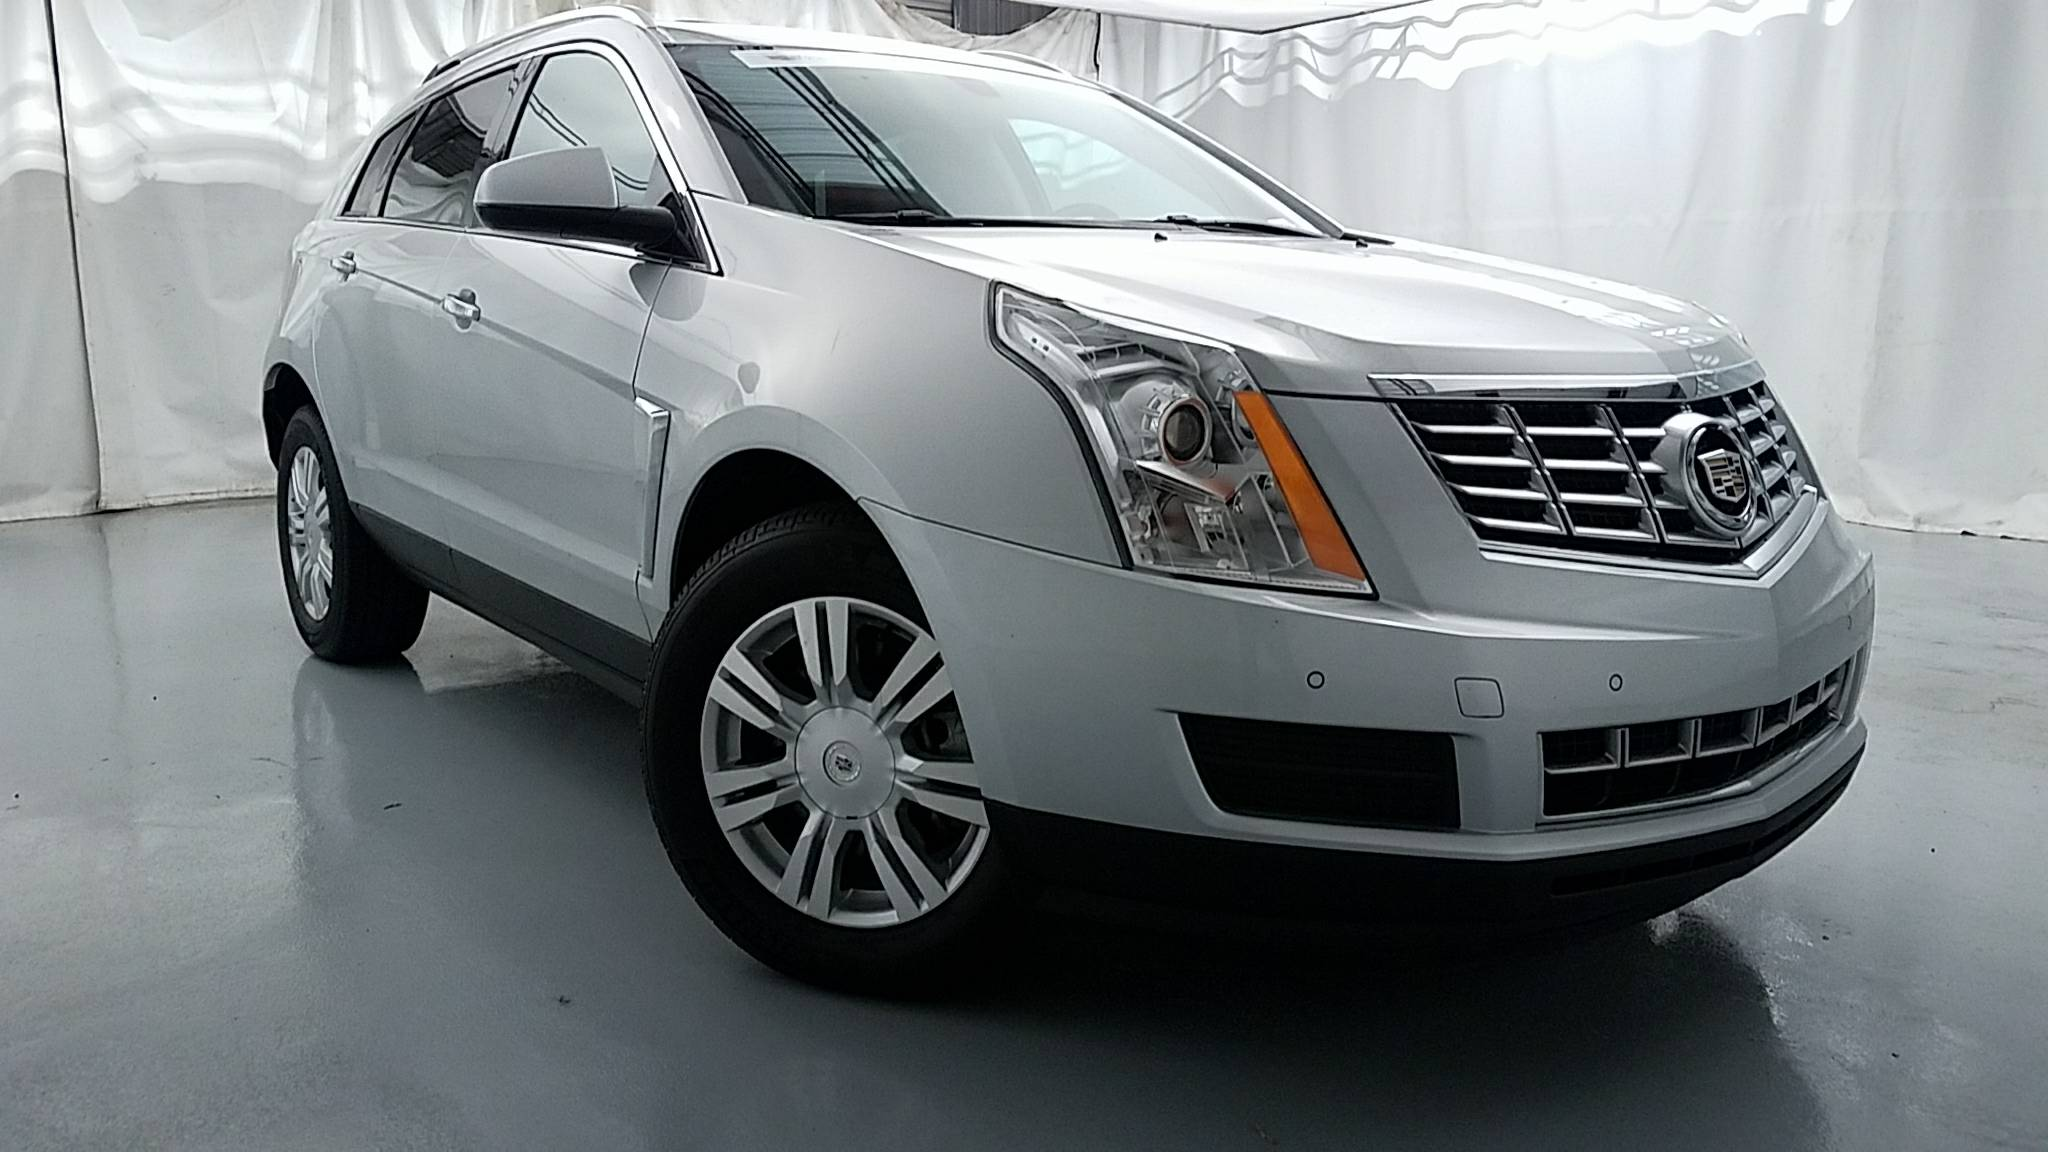 for sale buick gmc nissan ross vehiclesearchresults to drivers hammond rogue new search orleans dp downing vehicles at